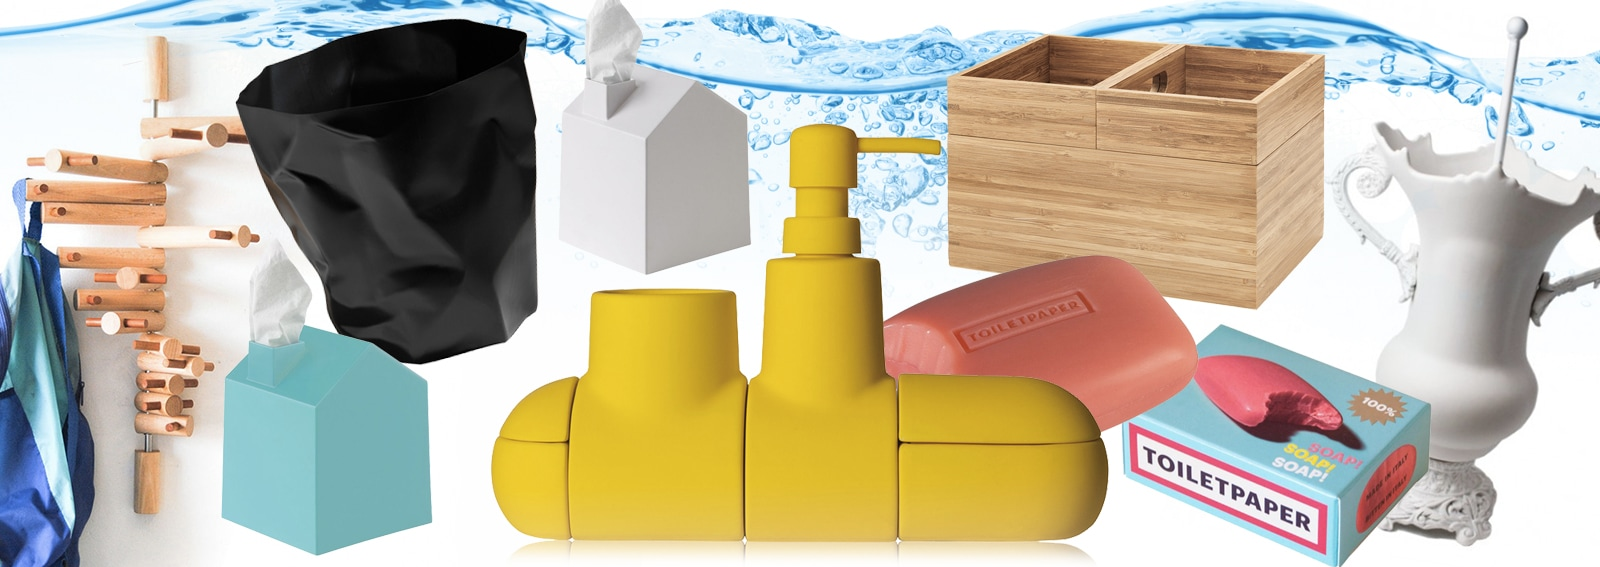 cover-accessori-bagno-desktop